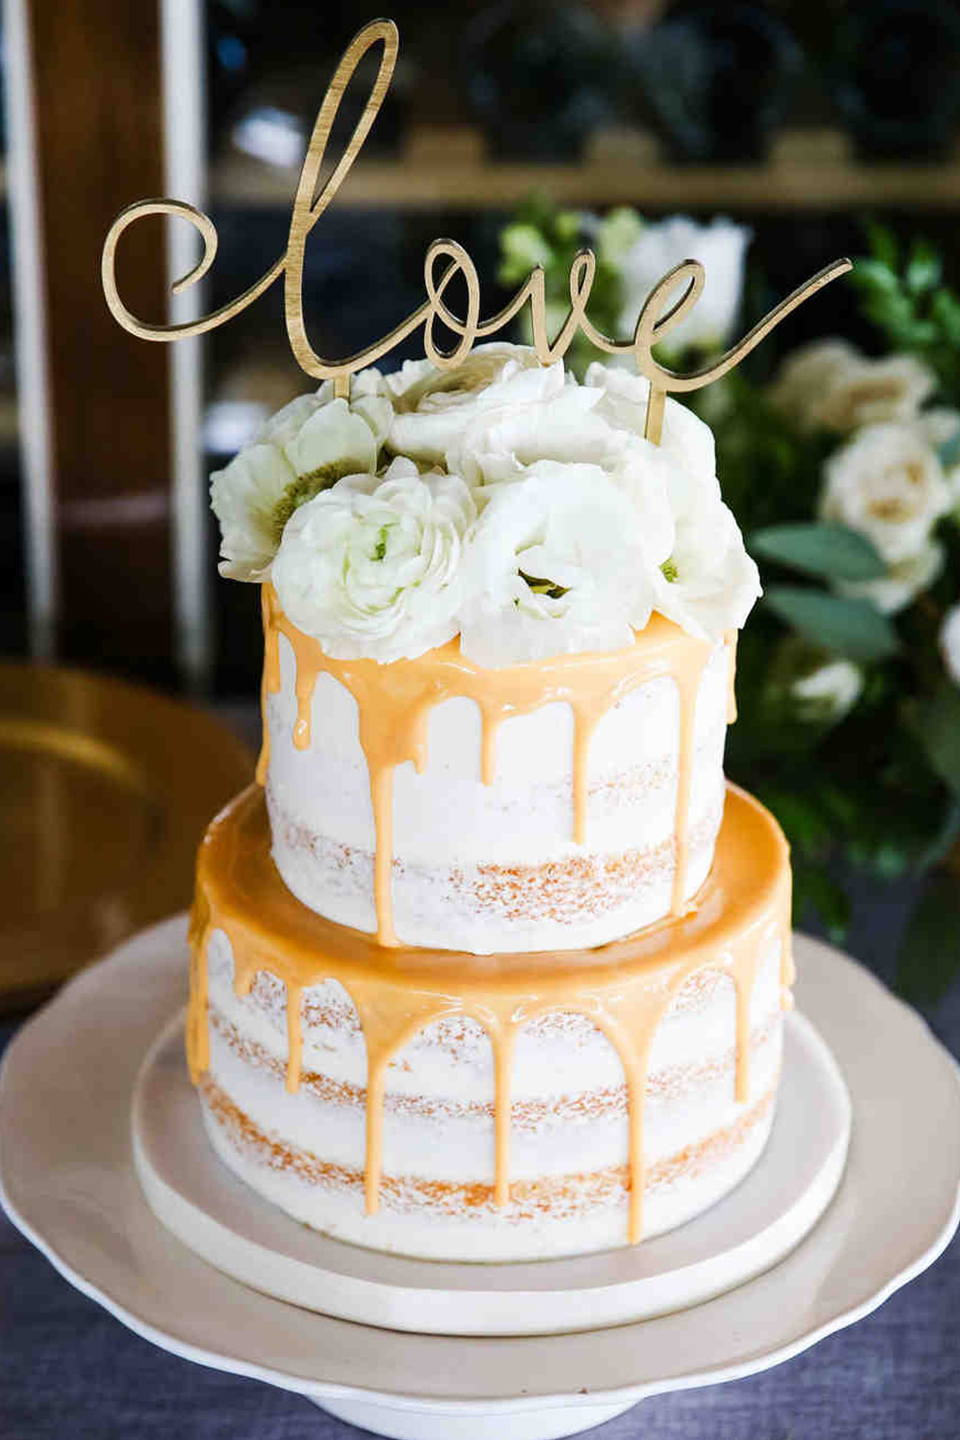 For a modern twist to your semi naked wedding cake at Bassmead Manor Barns add some decorative drip icing